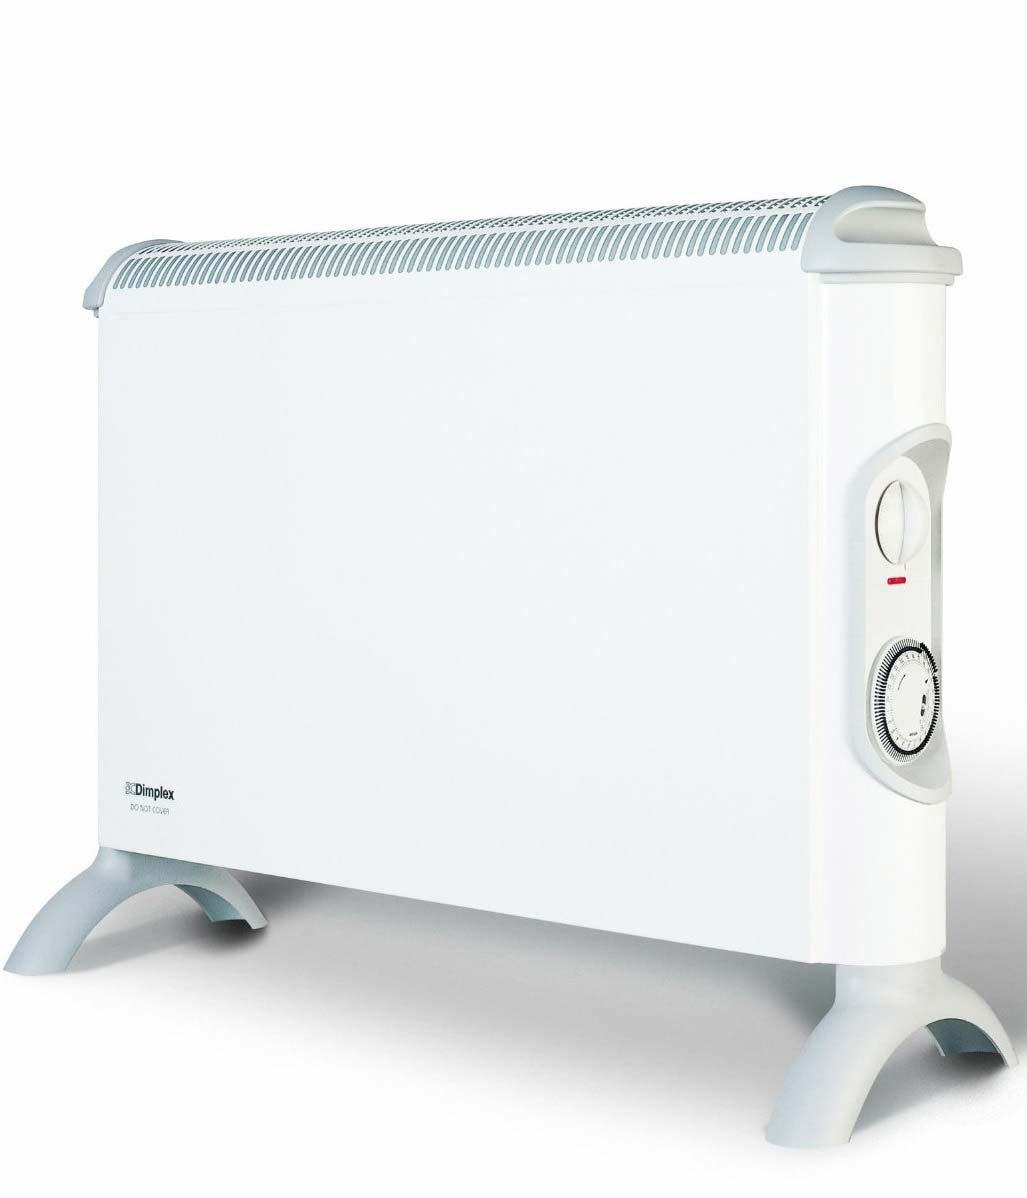 Dimplex 2kW Convector Heater with Timer | 402TSTI